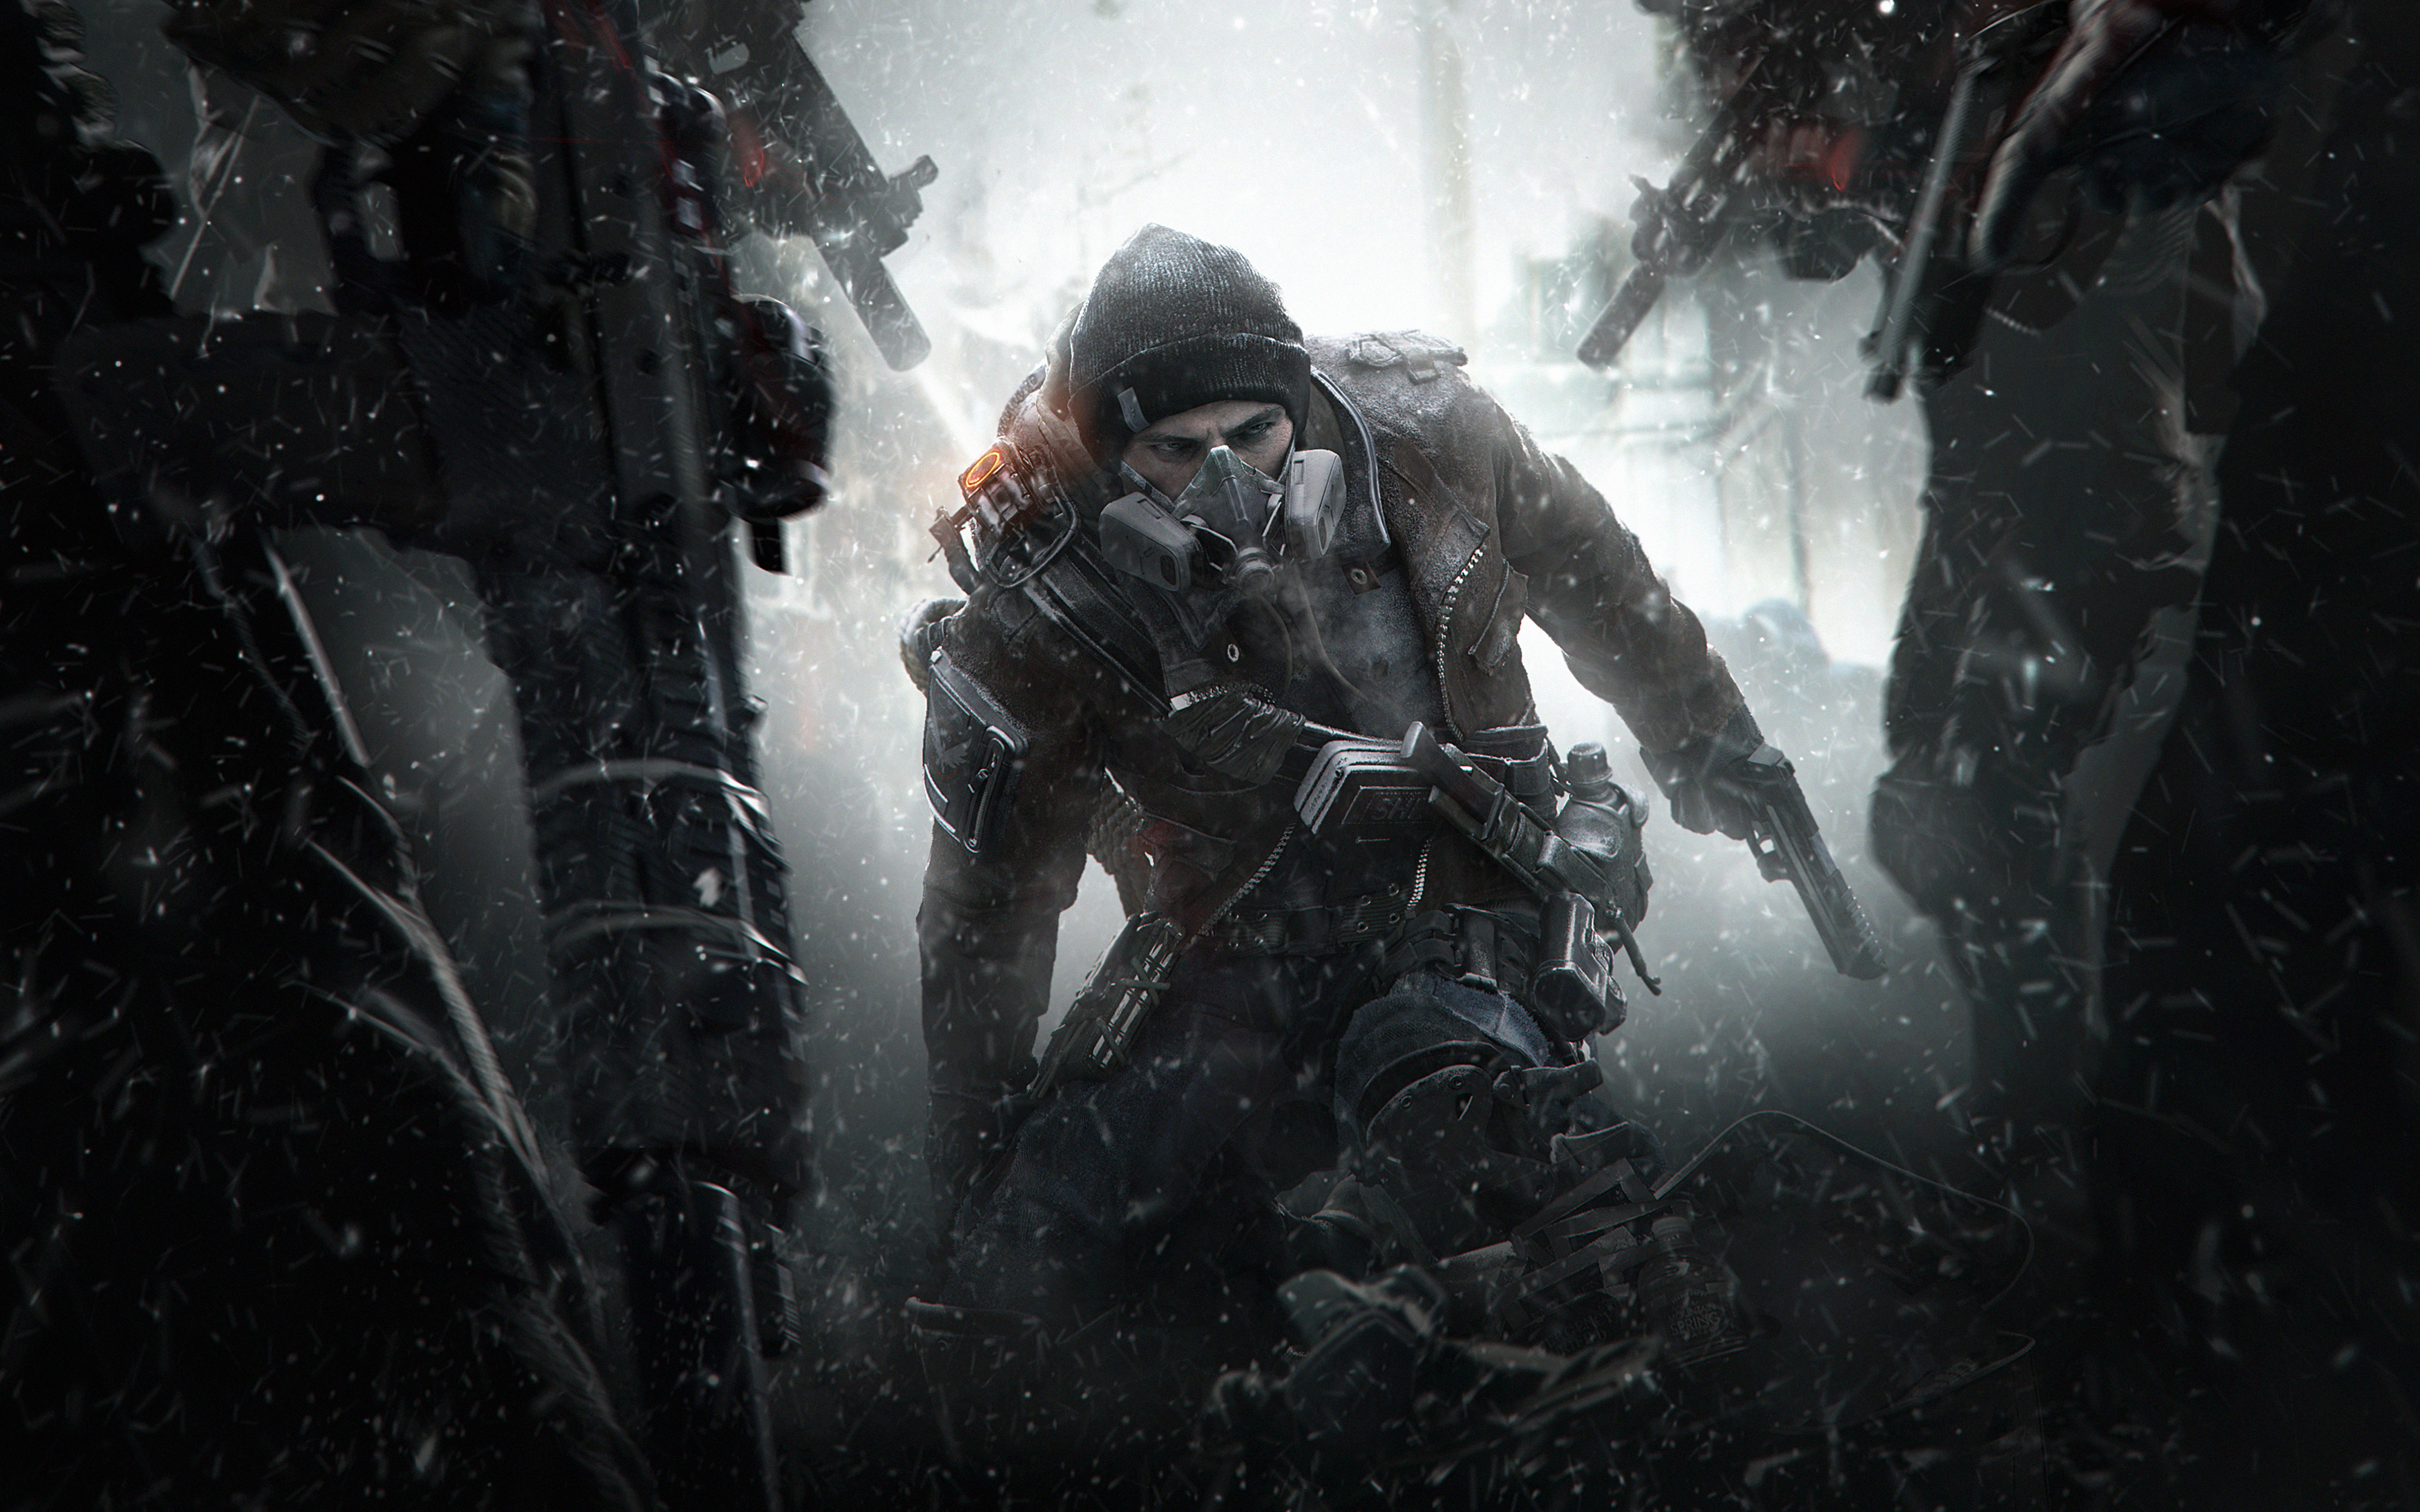 Tom Clancy's The Division 4k Ultra HD Wallpaper | Background Image | 4000x2500 | ID:769893 - Wallpaper Abyss